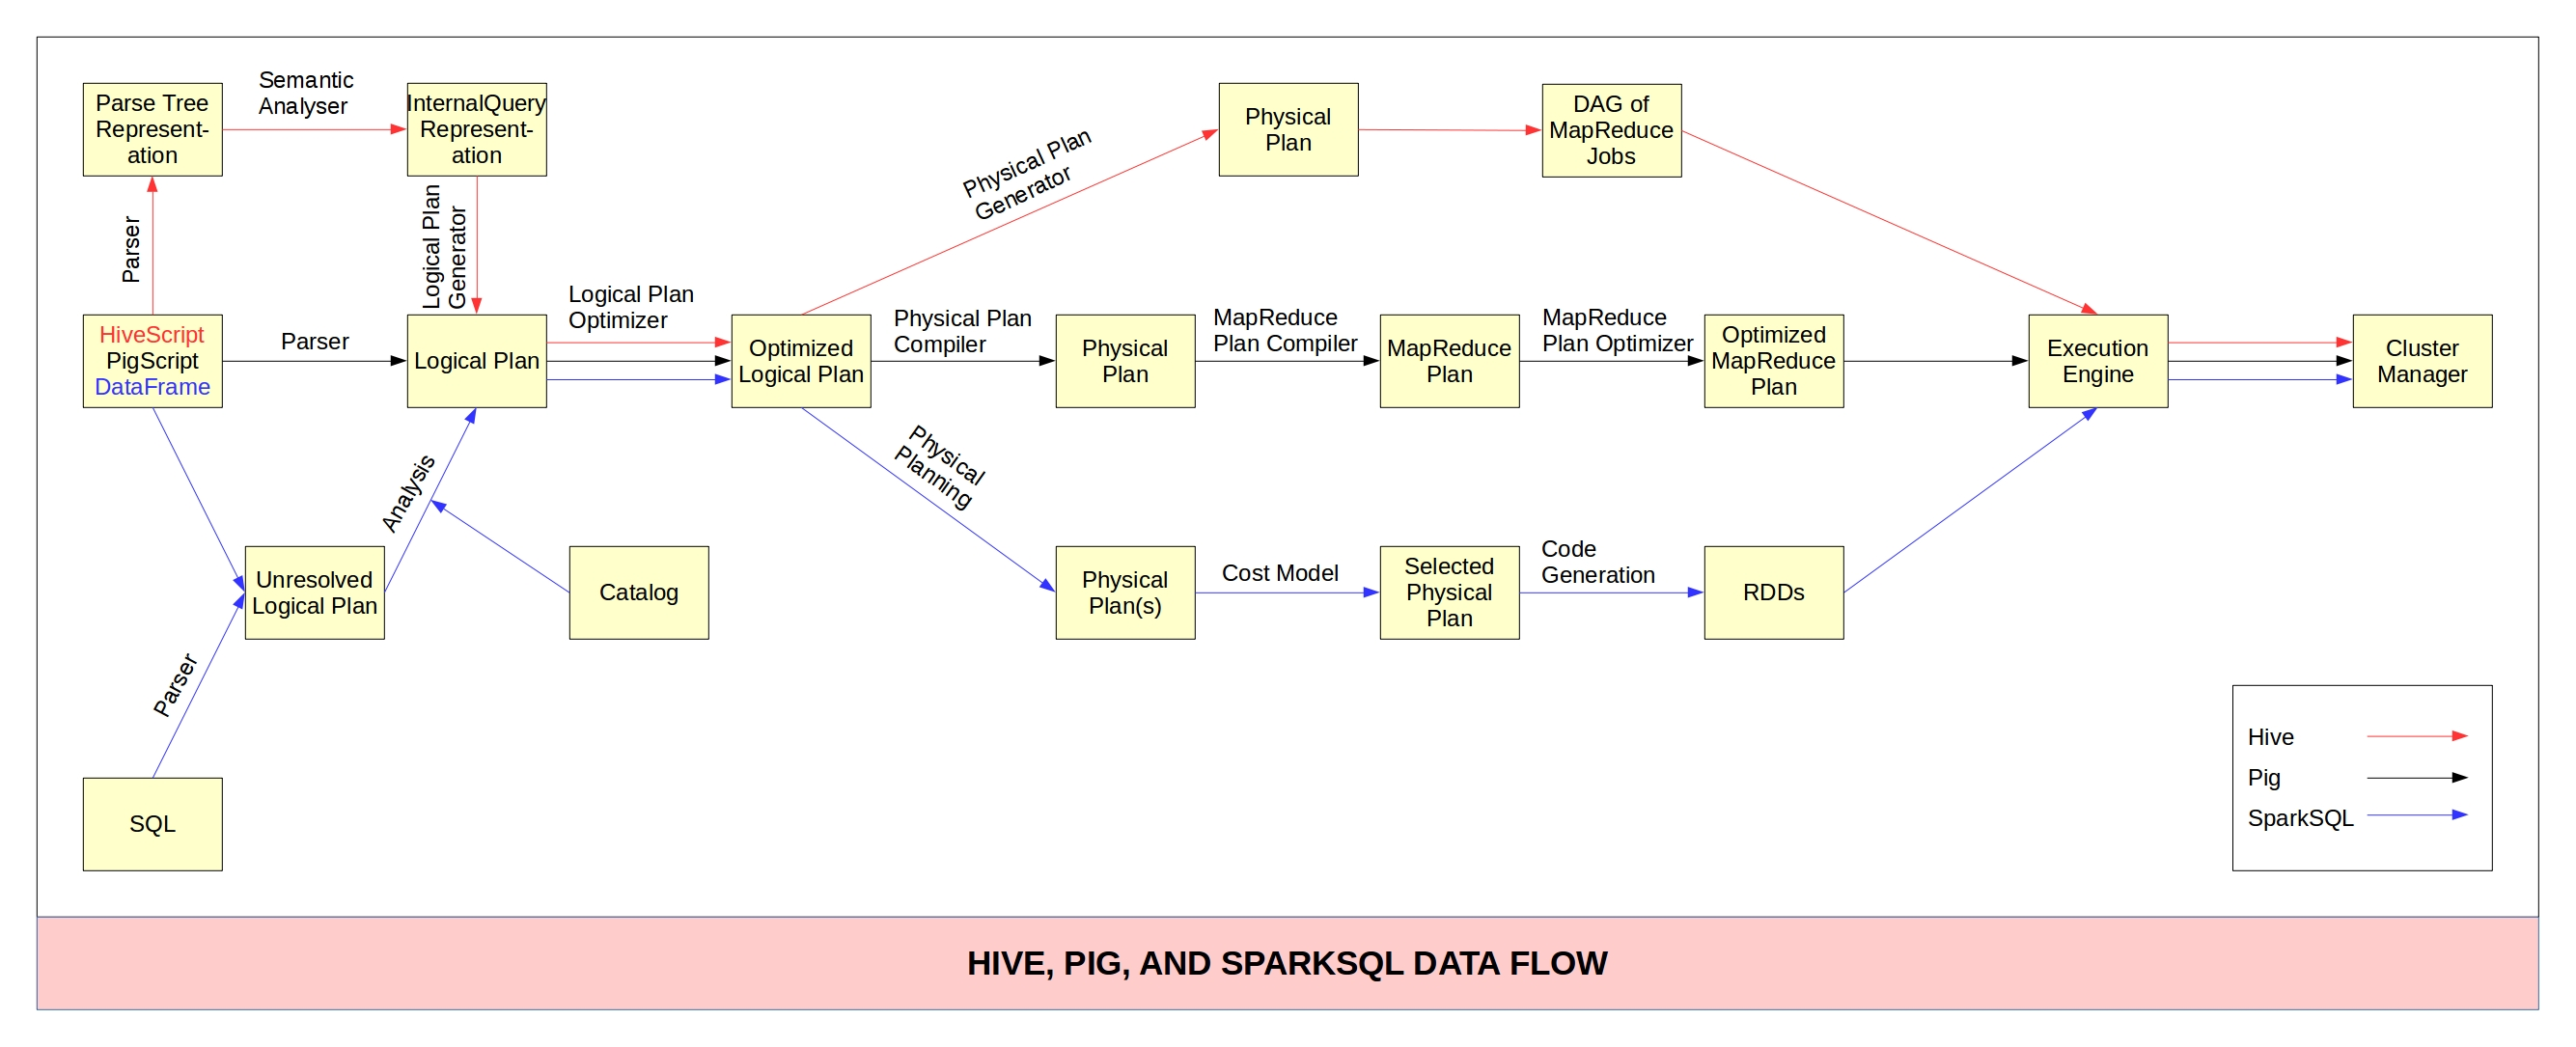 Distributed By Hive Sparksql Hive Pig Comparison